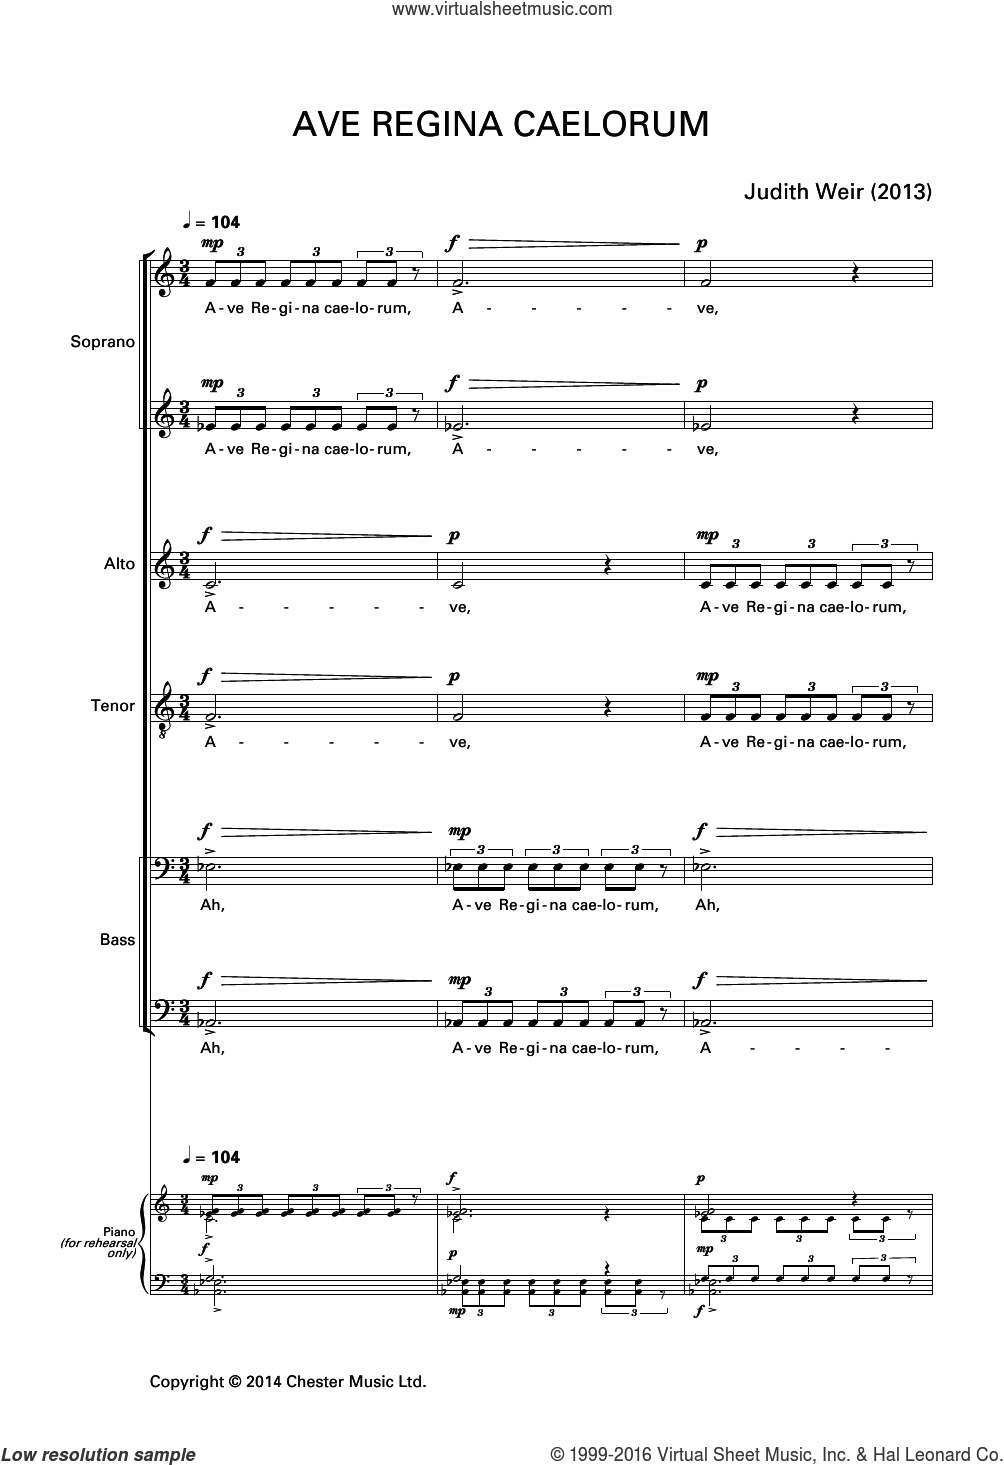 Ave Regina Caelorum sheet music for voice, piano or guitar by Liturgical Text and Judith Weir. Score Image Preview.